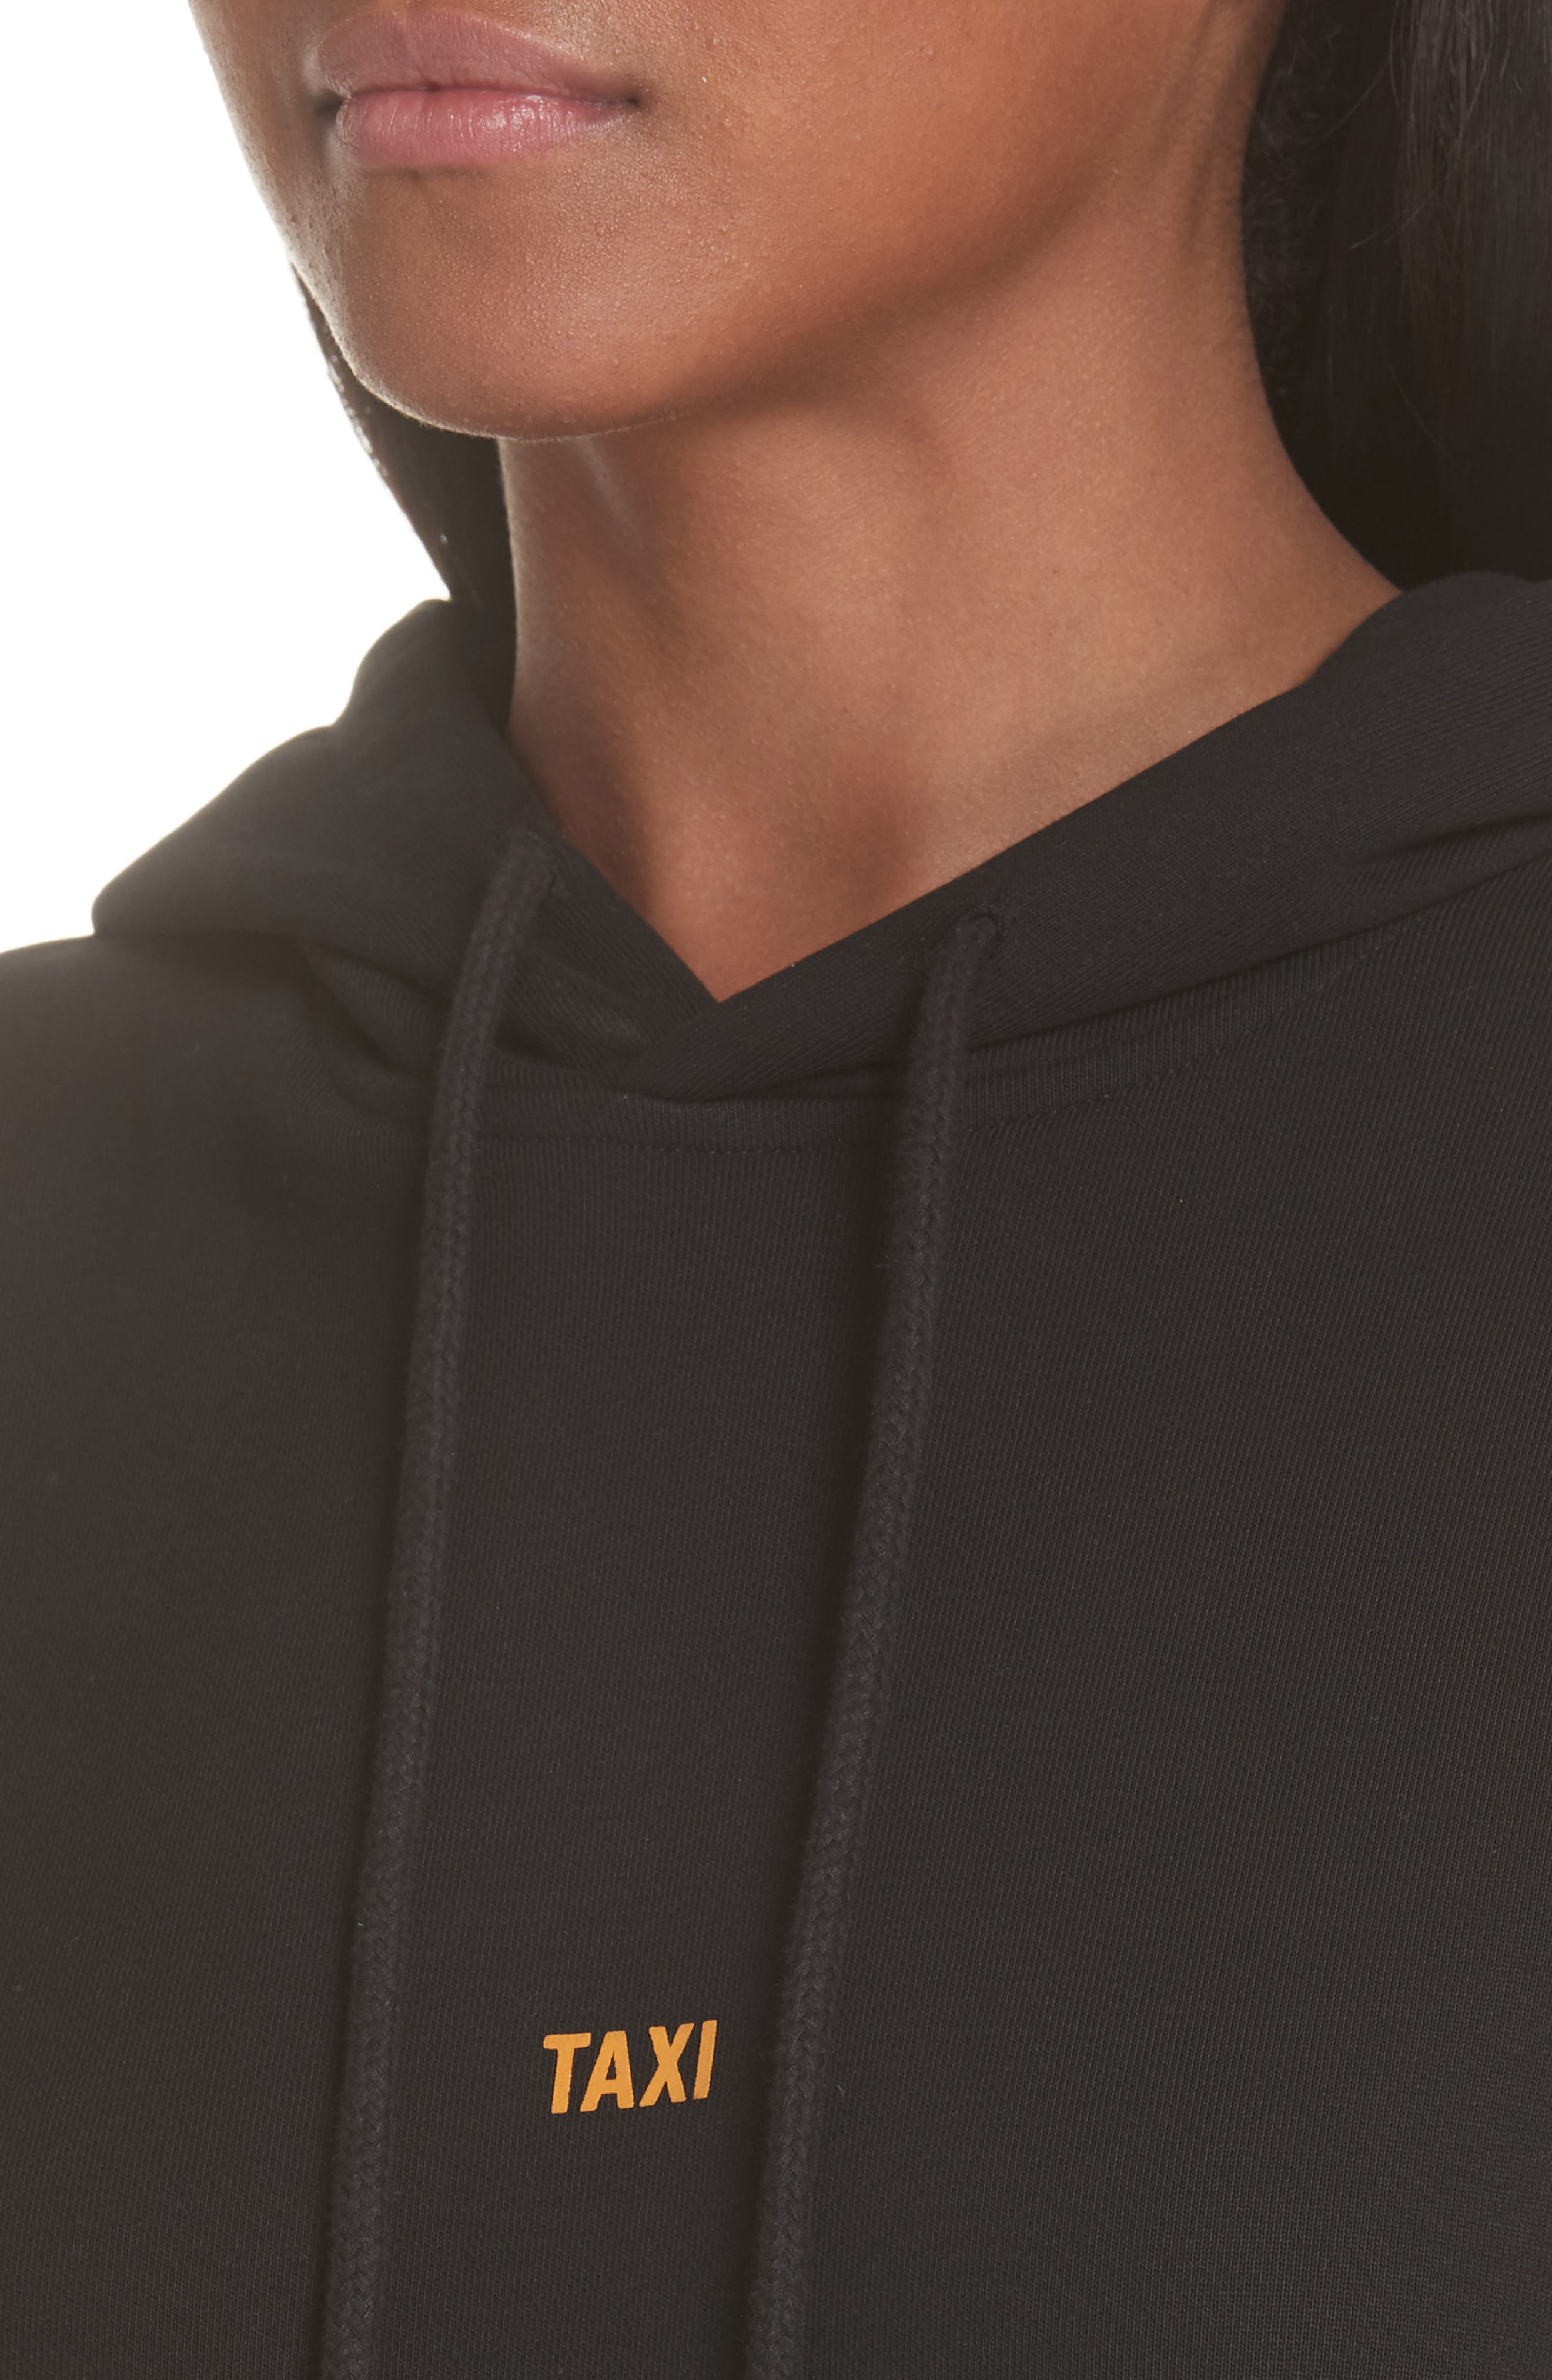 Taxi Hoodie,                             Alternate thumbnail 4, color,                             001